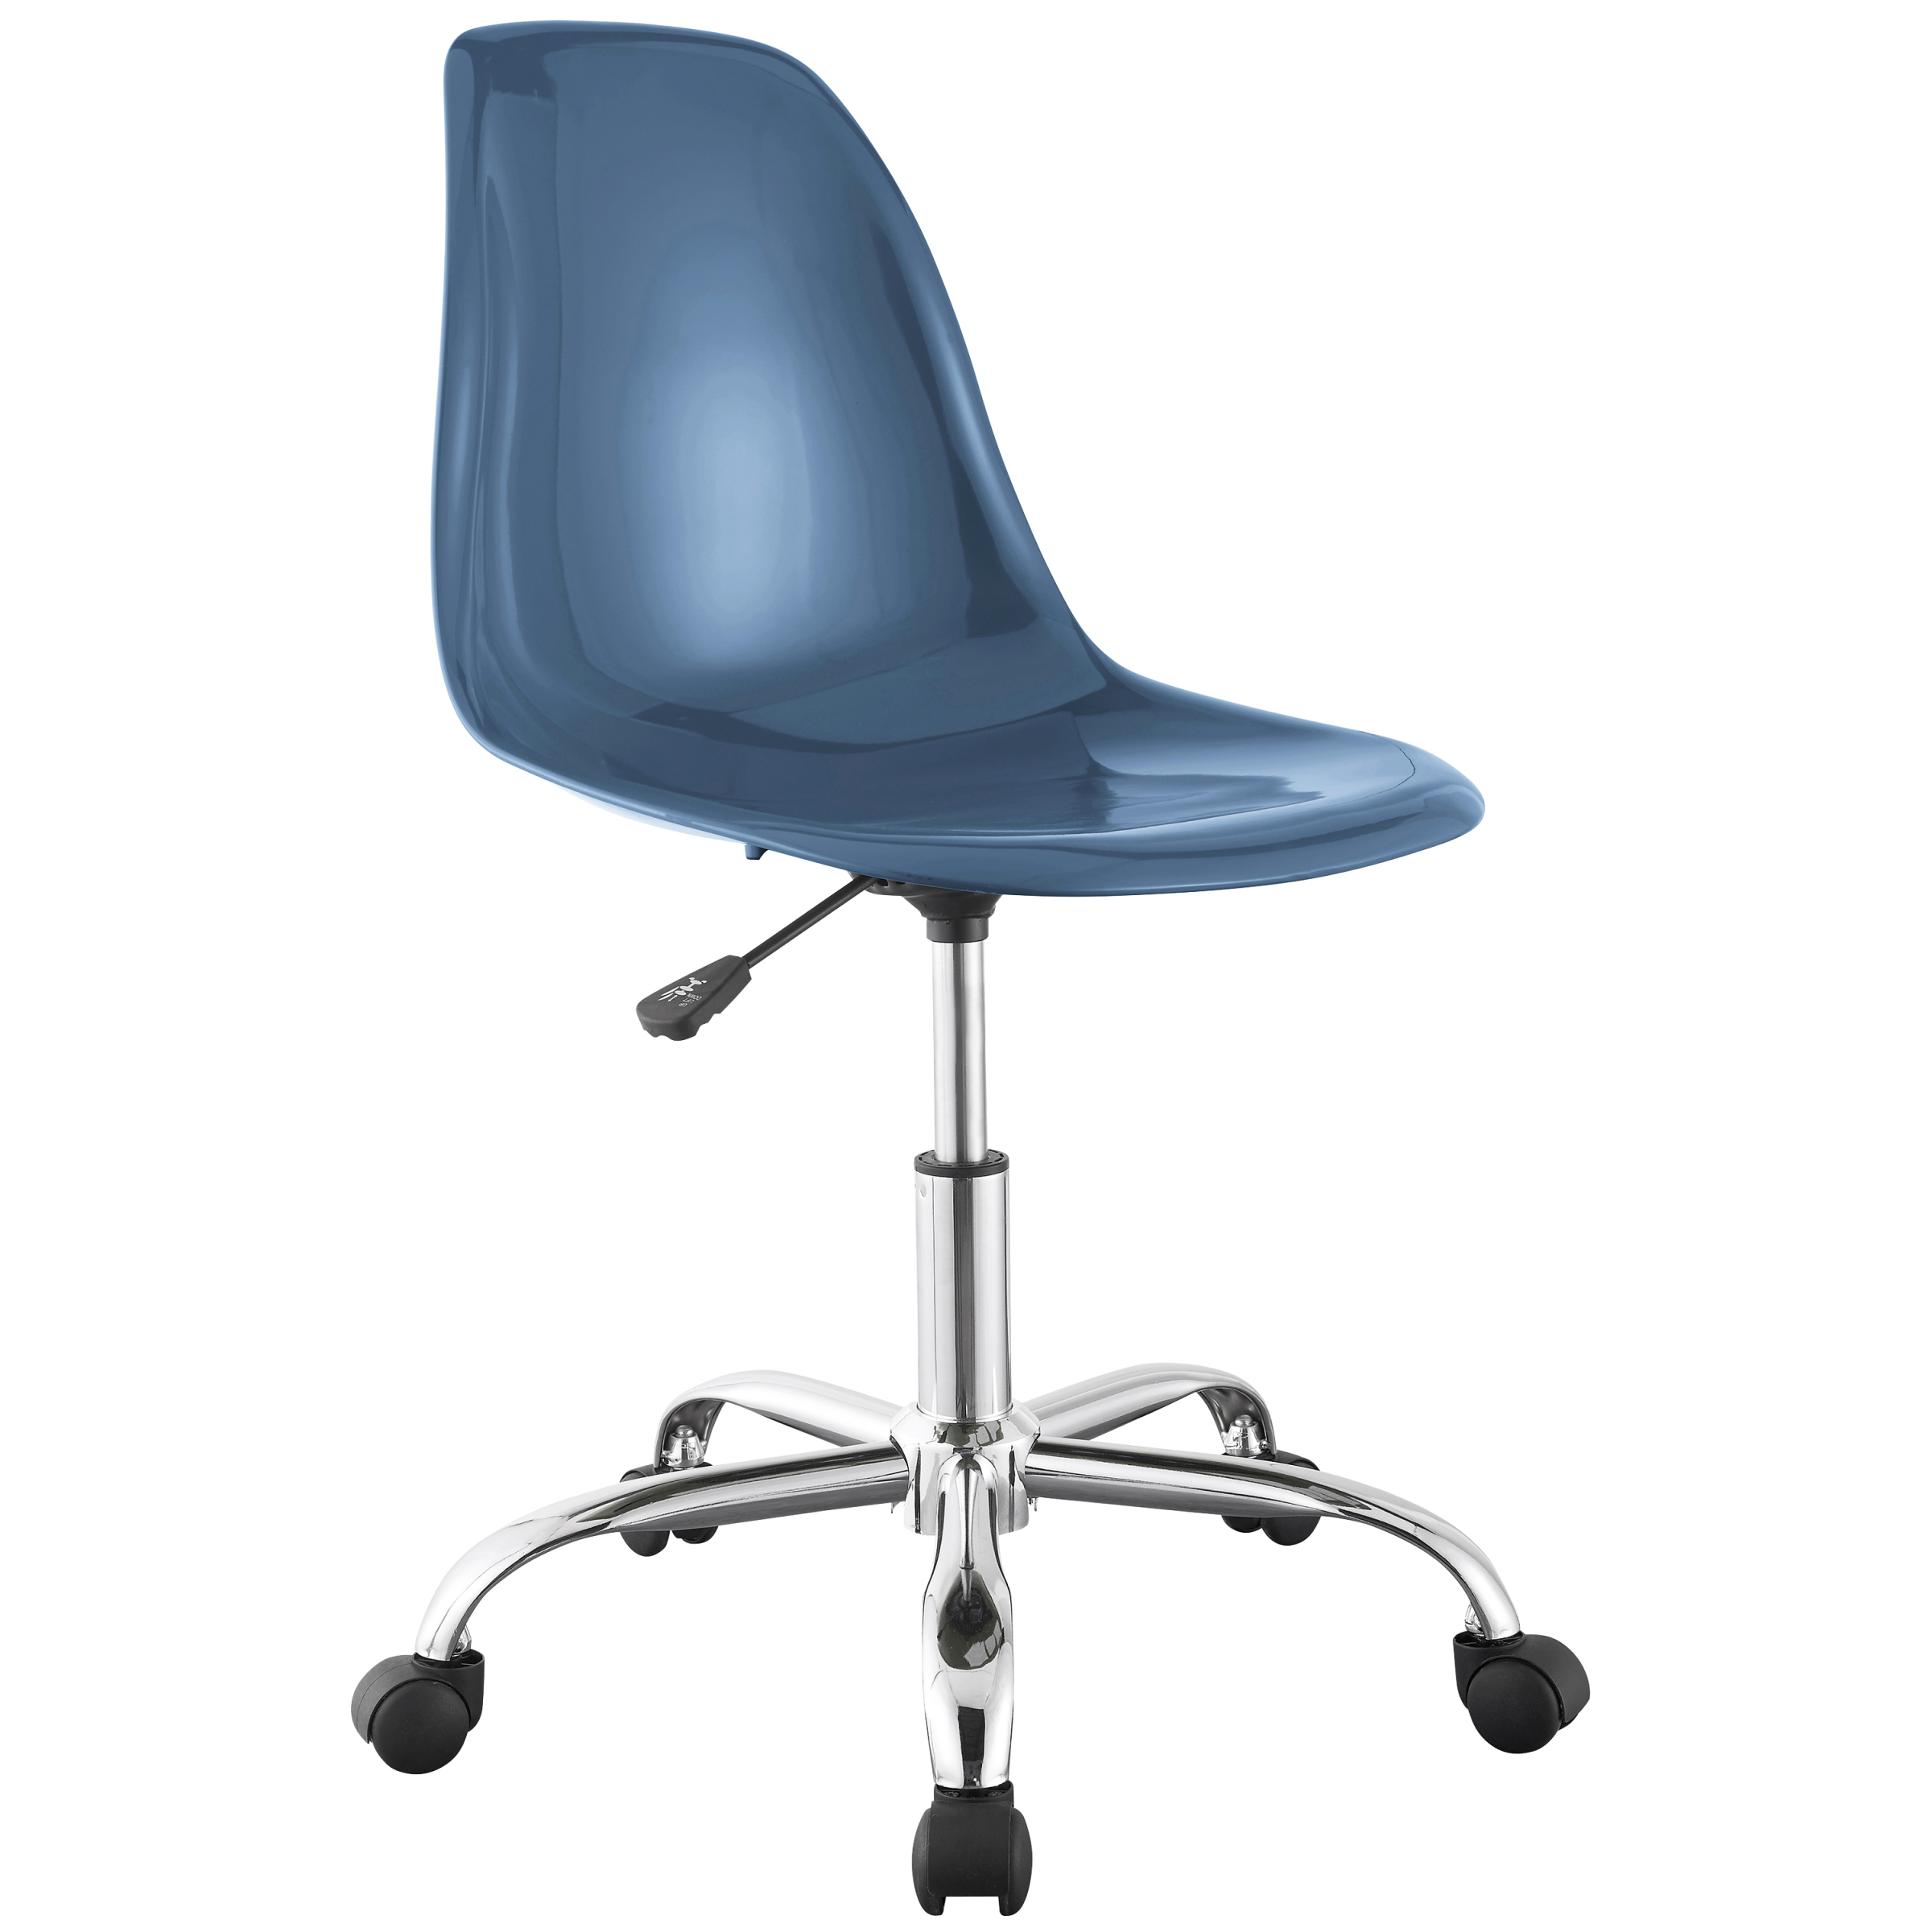 Mainstays Contemporary Office Chair, Multiple Colors   Walmart.com